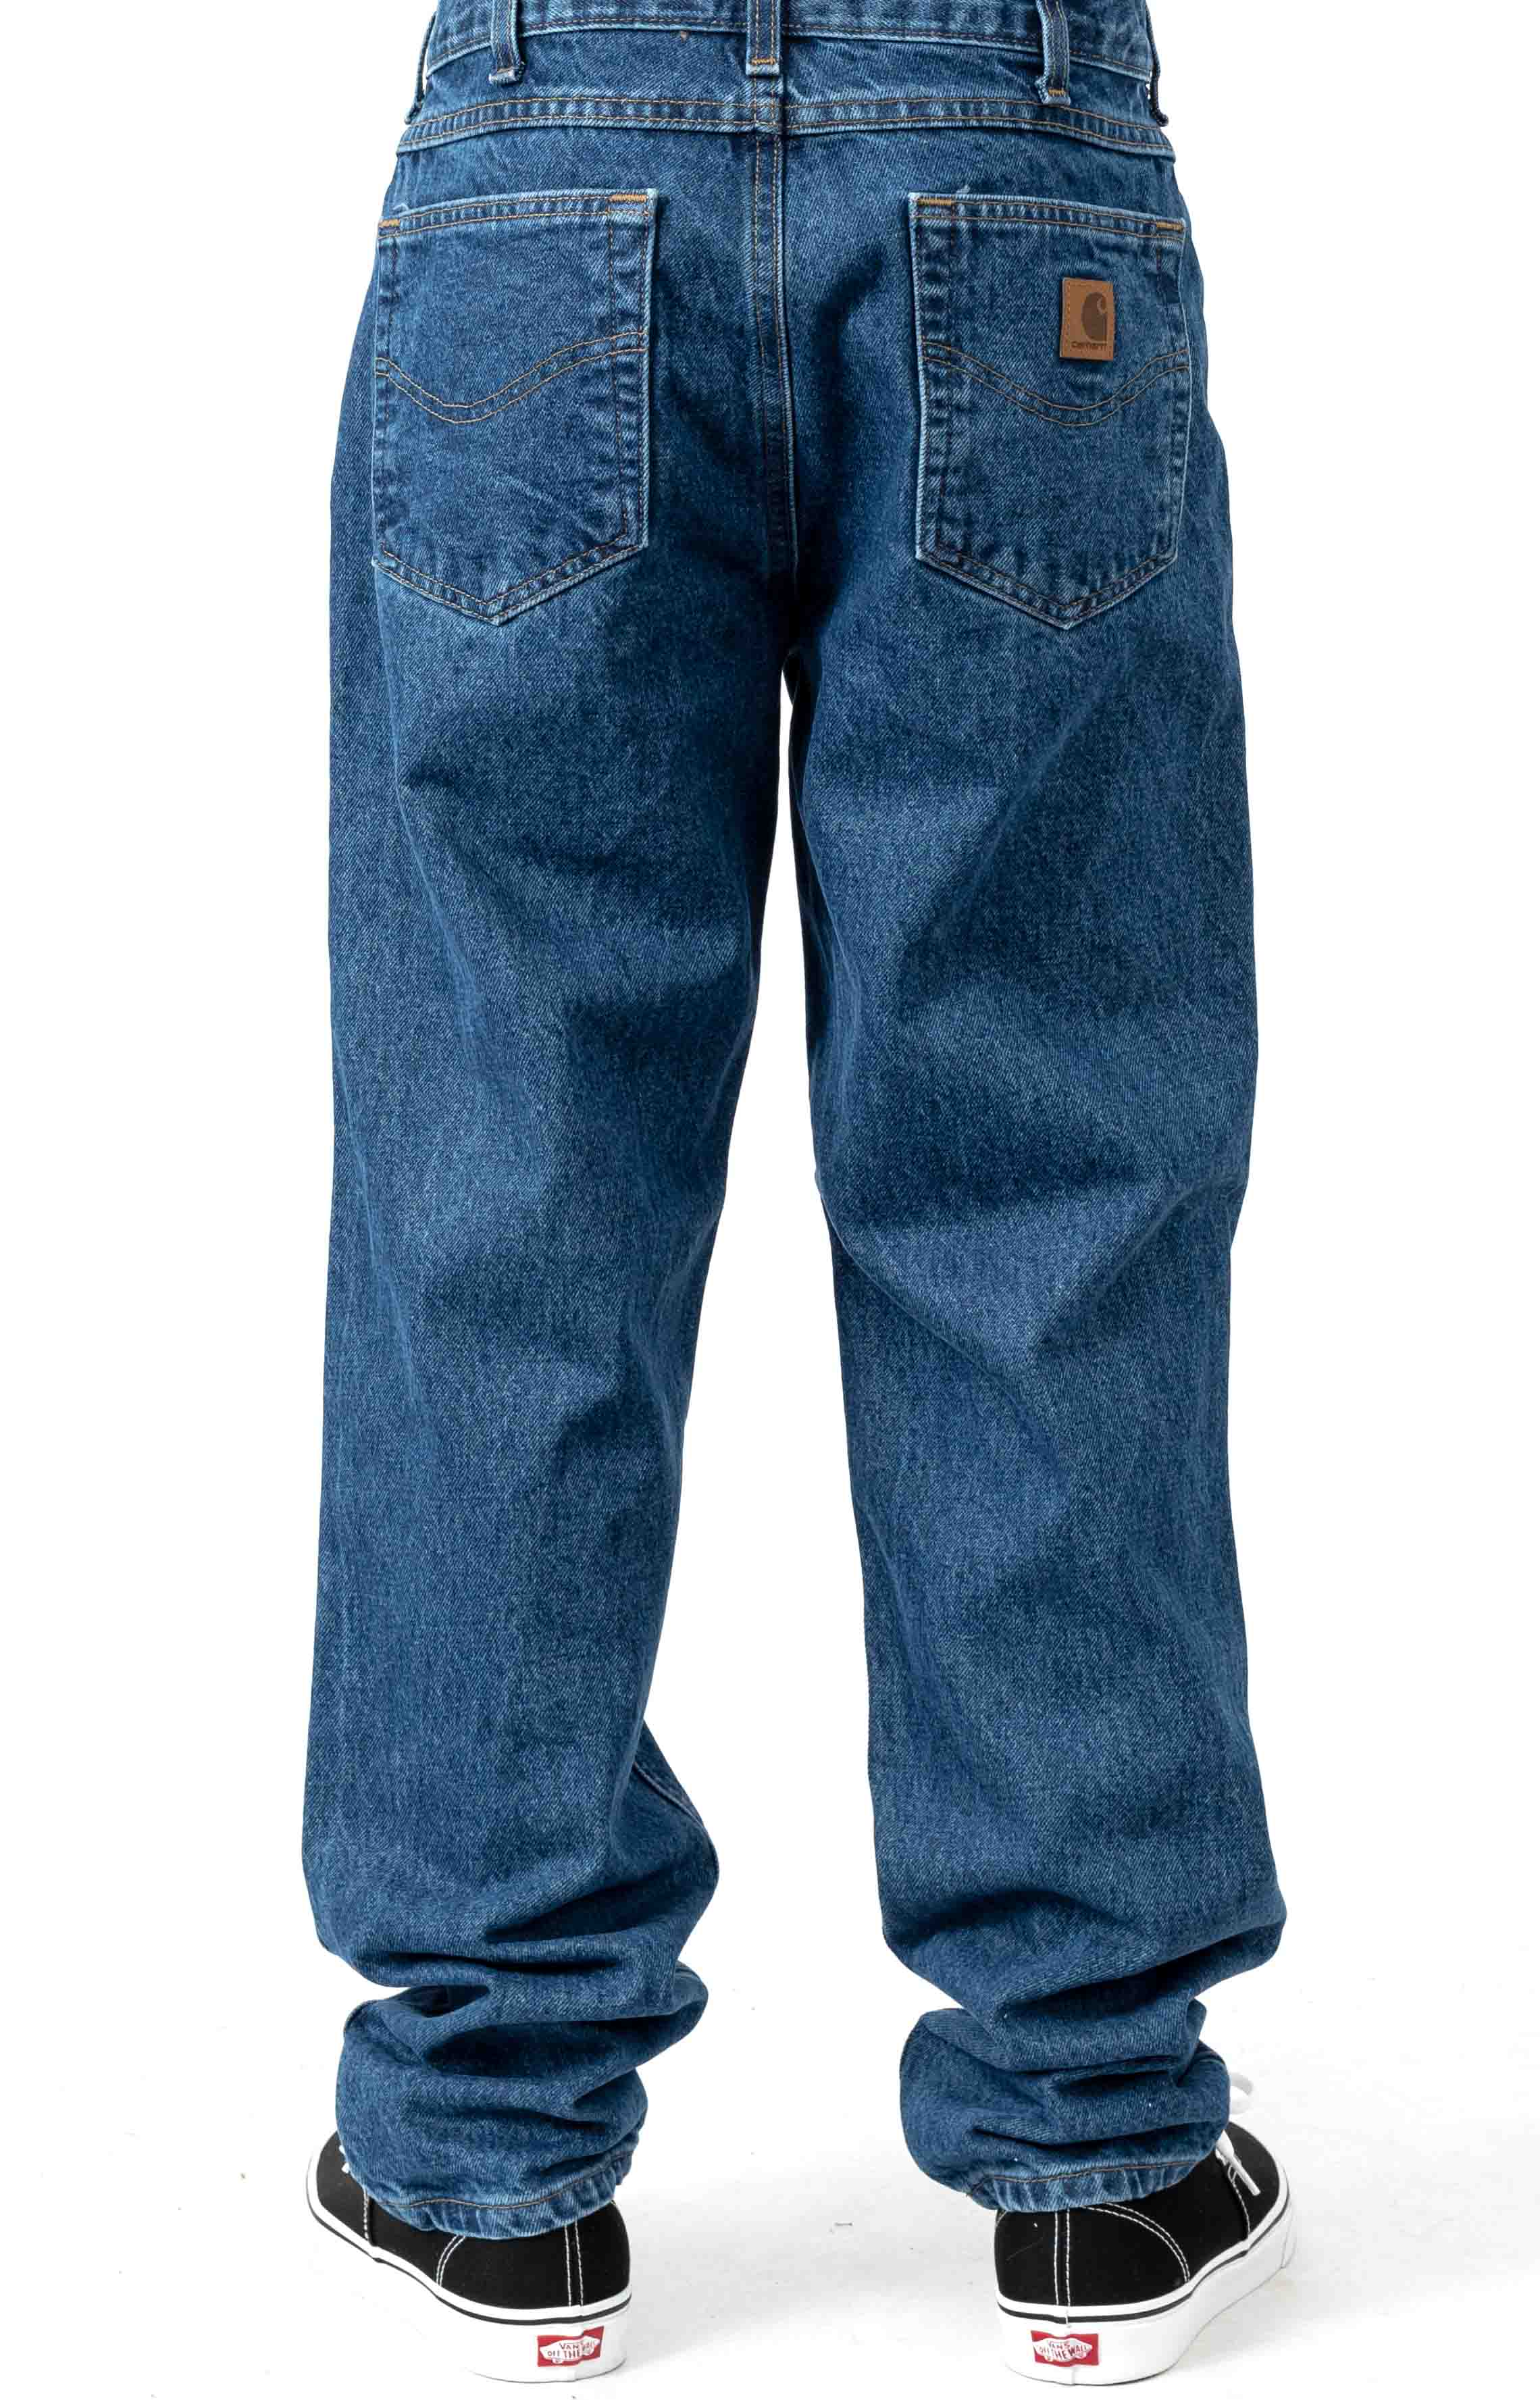 (B17) Relaxed Fit Tapered Leg Jeans - Darkstone 3